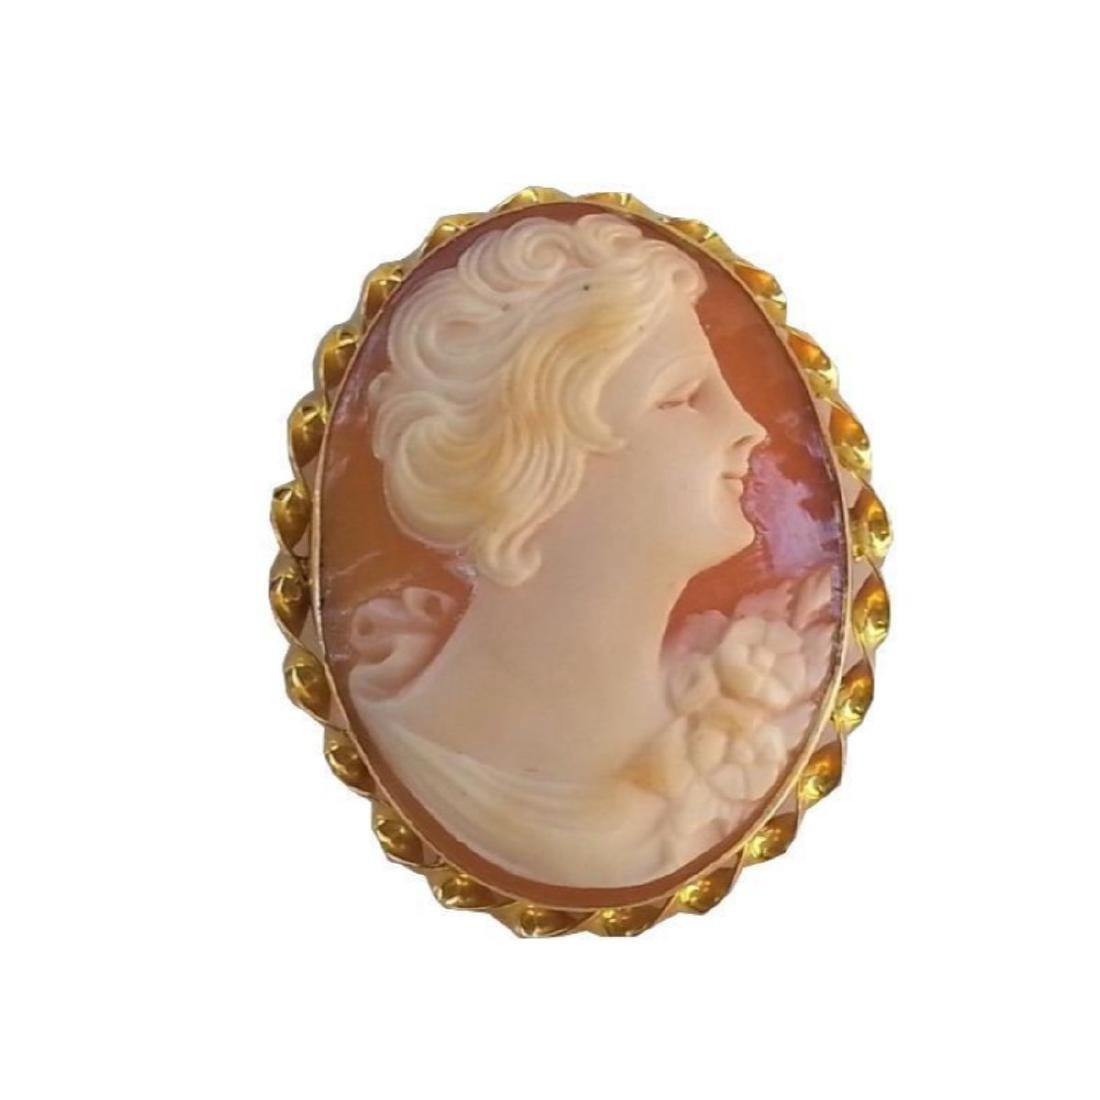 Vintage 10kt Yellow Gold Cameo Brooch - 3